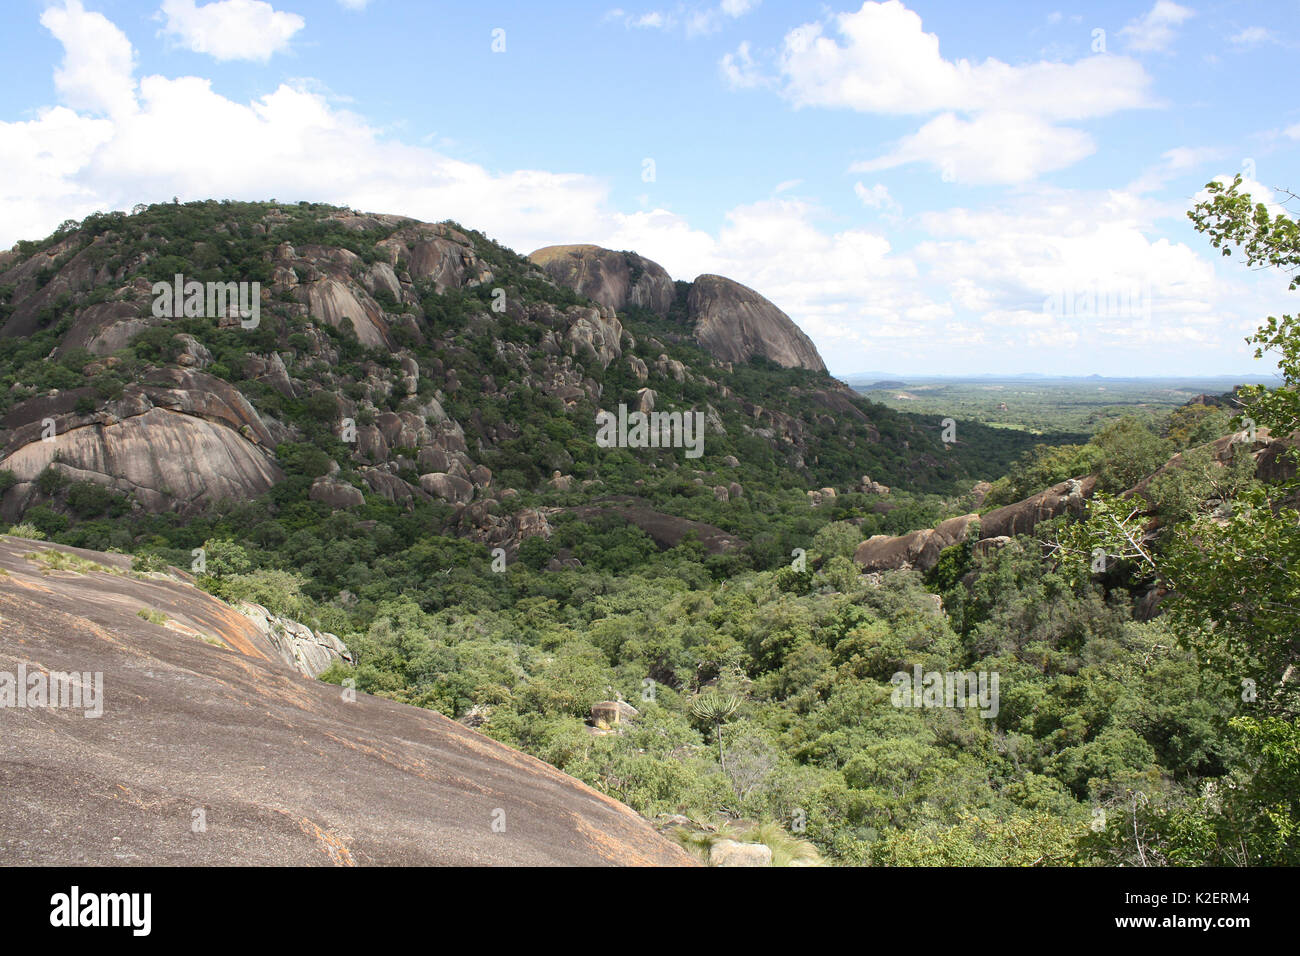 Worlds View, near the graves of Cecil Rhodes, and Leander Starr Jameson, Matobo Hills, Zimbabwe. January 2011. - Stock Image